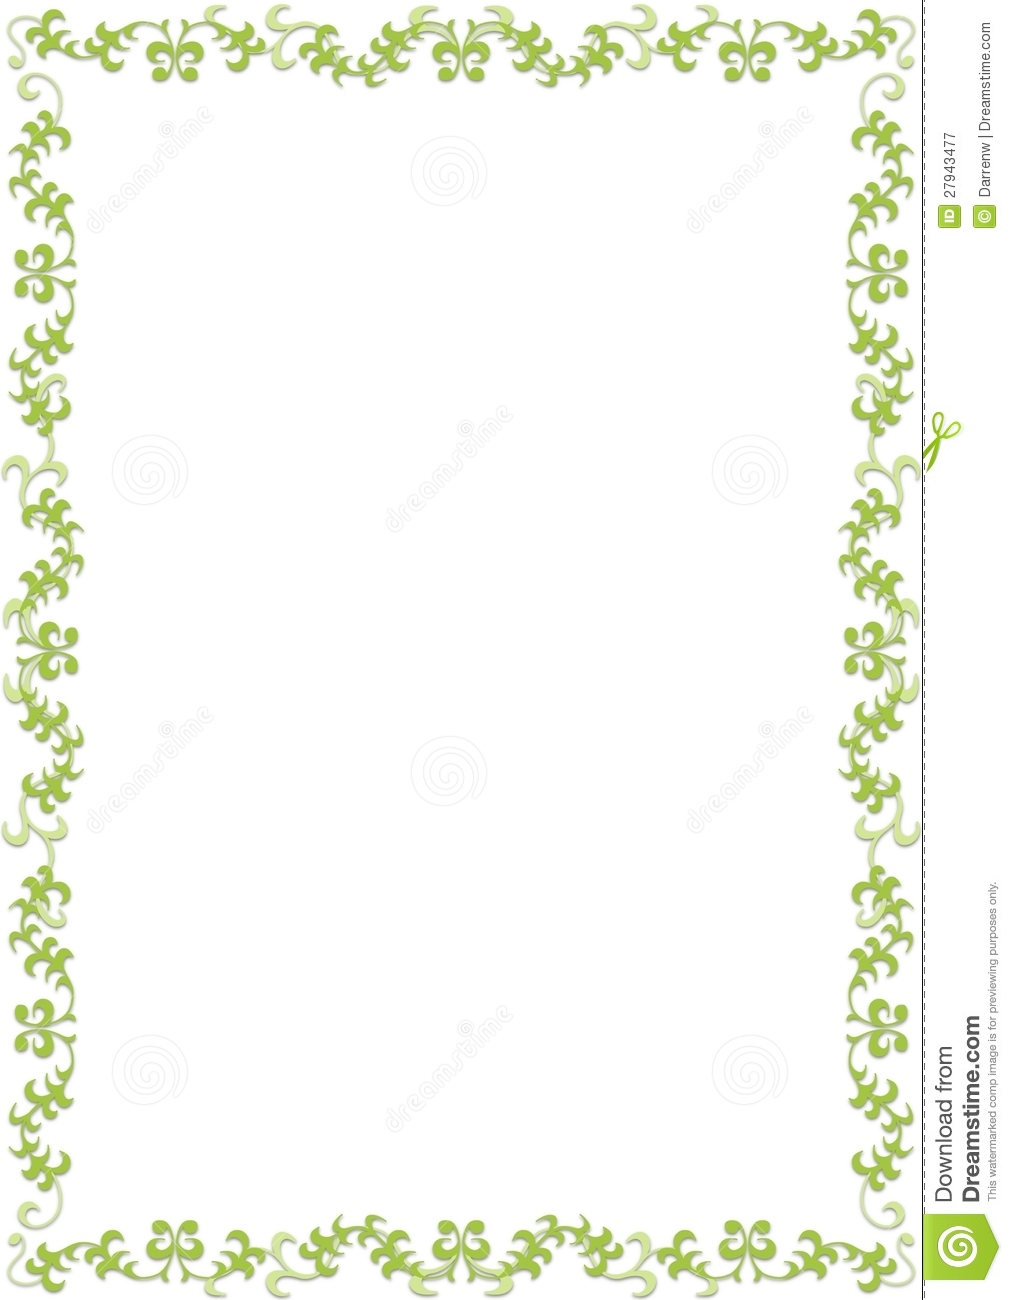 Green Floral Border Royalty Free Stock Photography Image